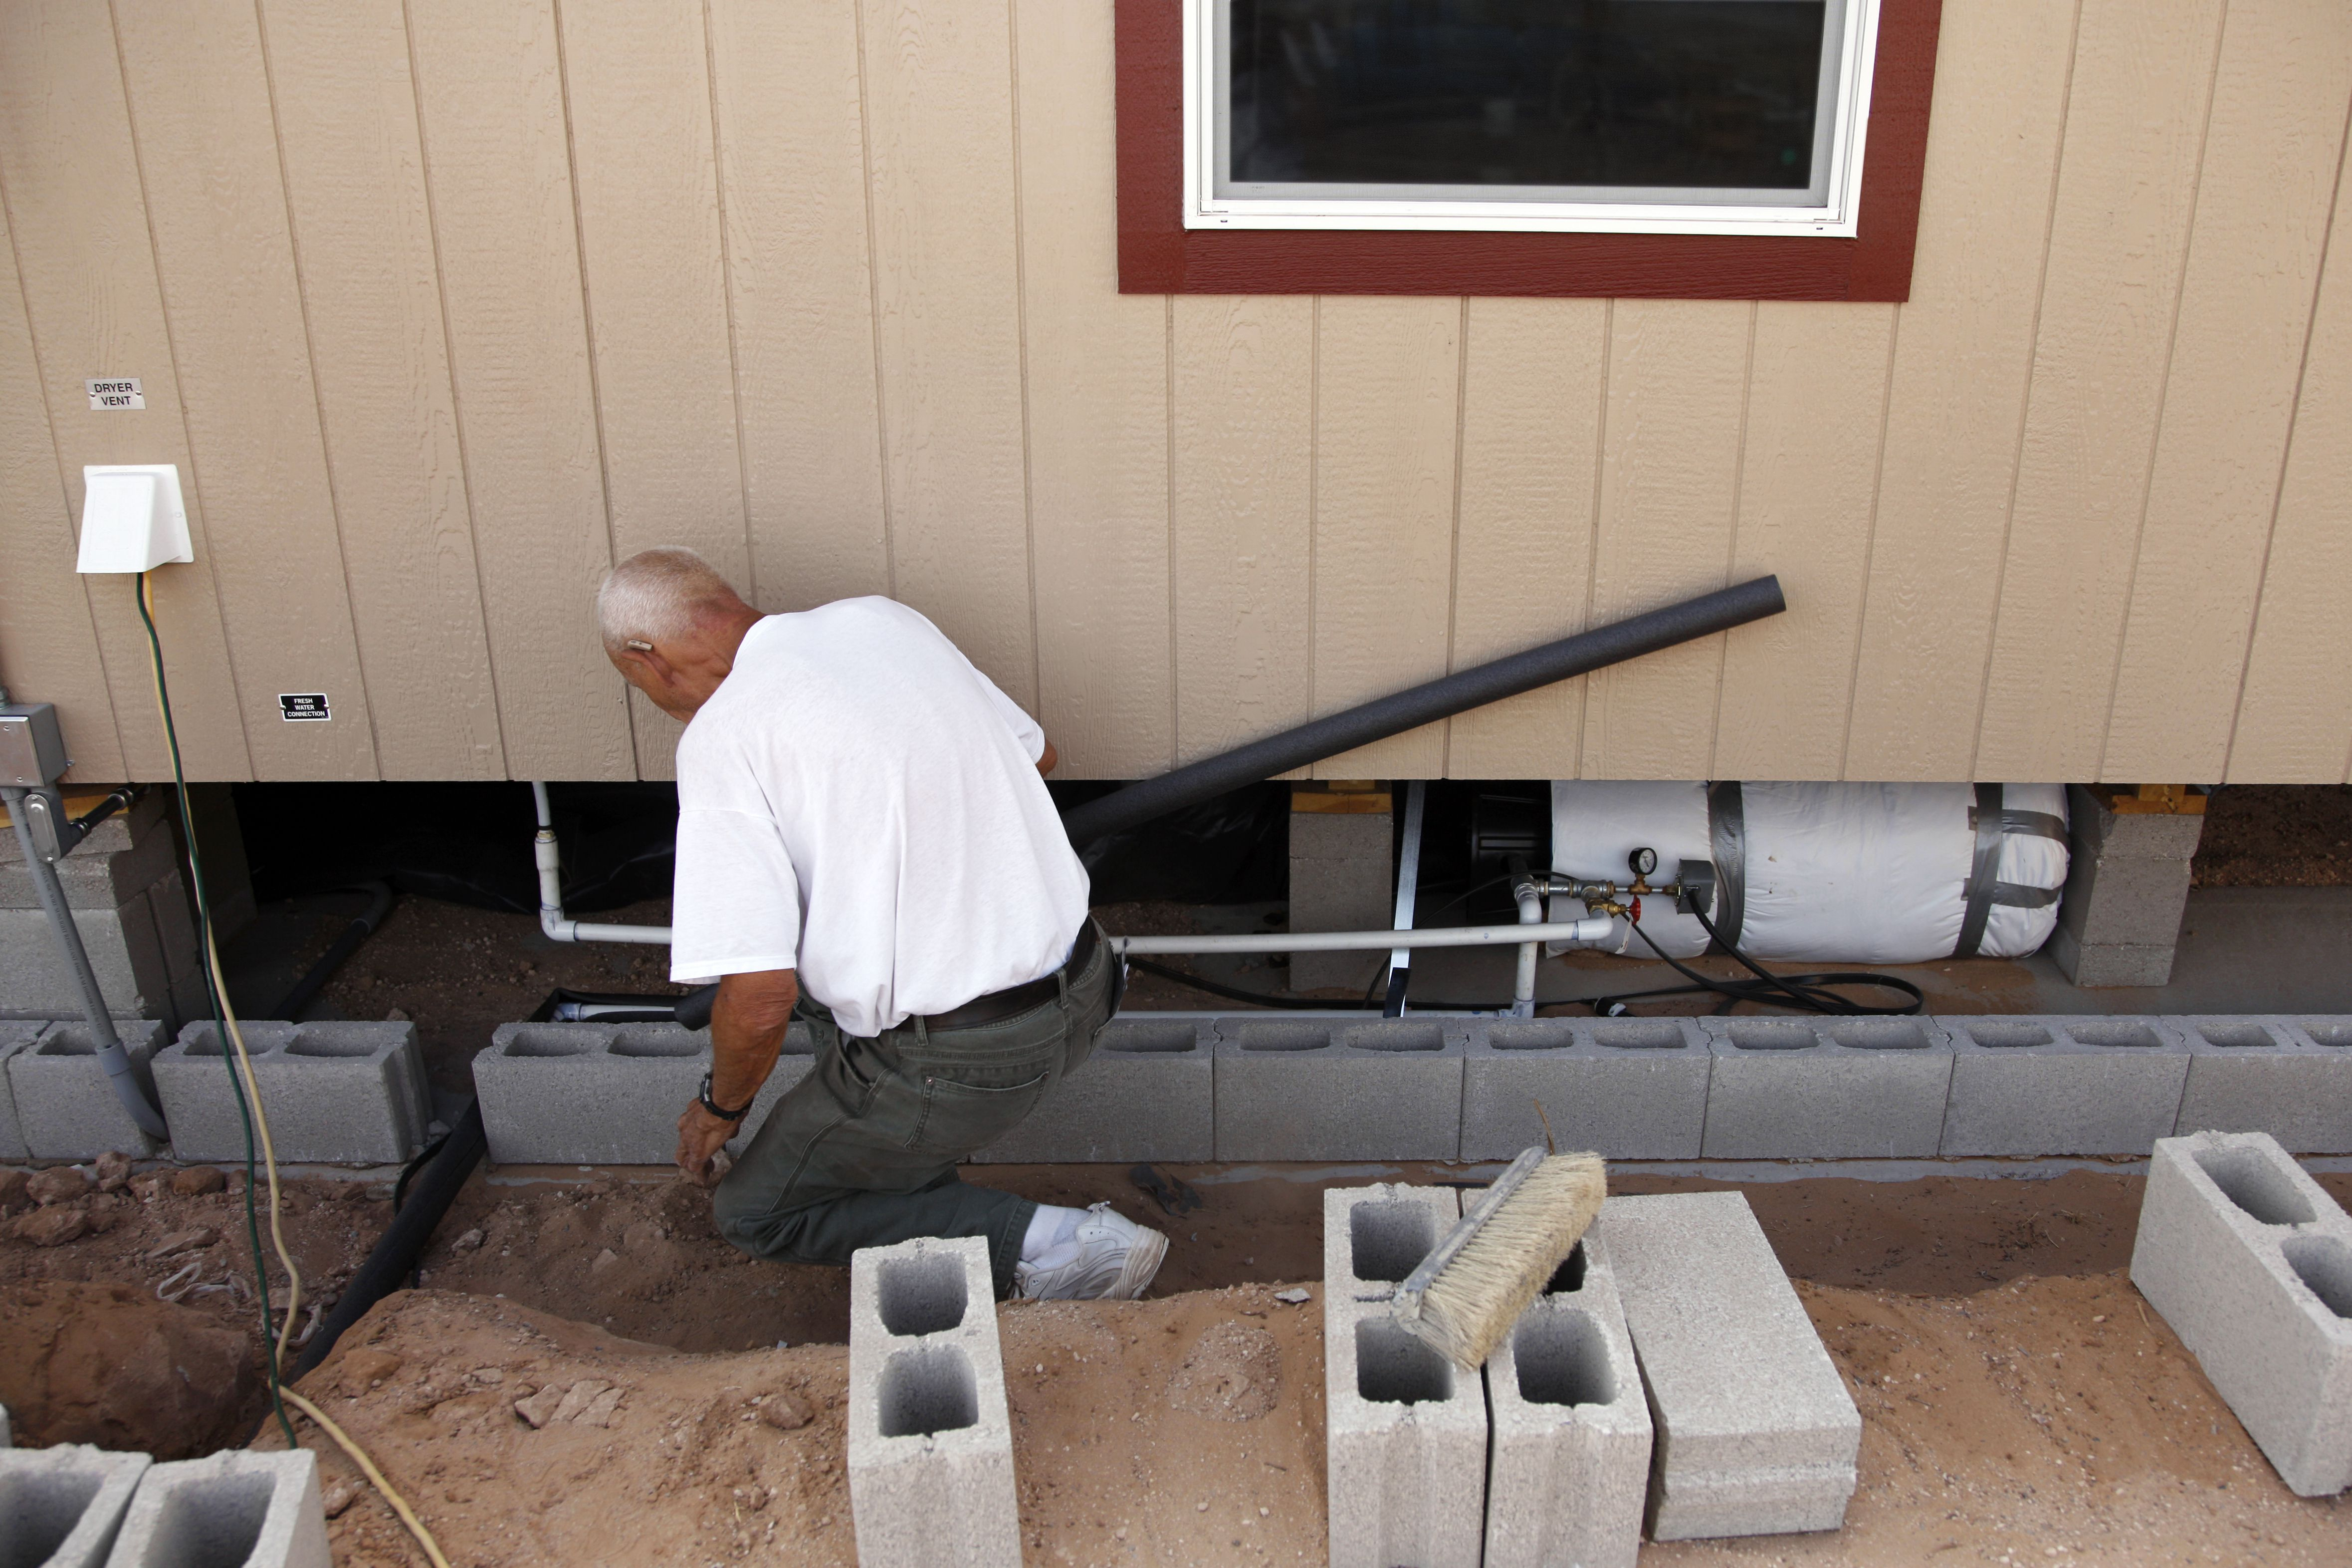 How to Shut f the Main Water Supply in a Mobile Home